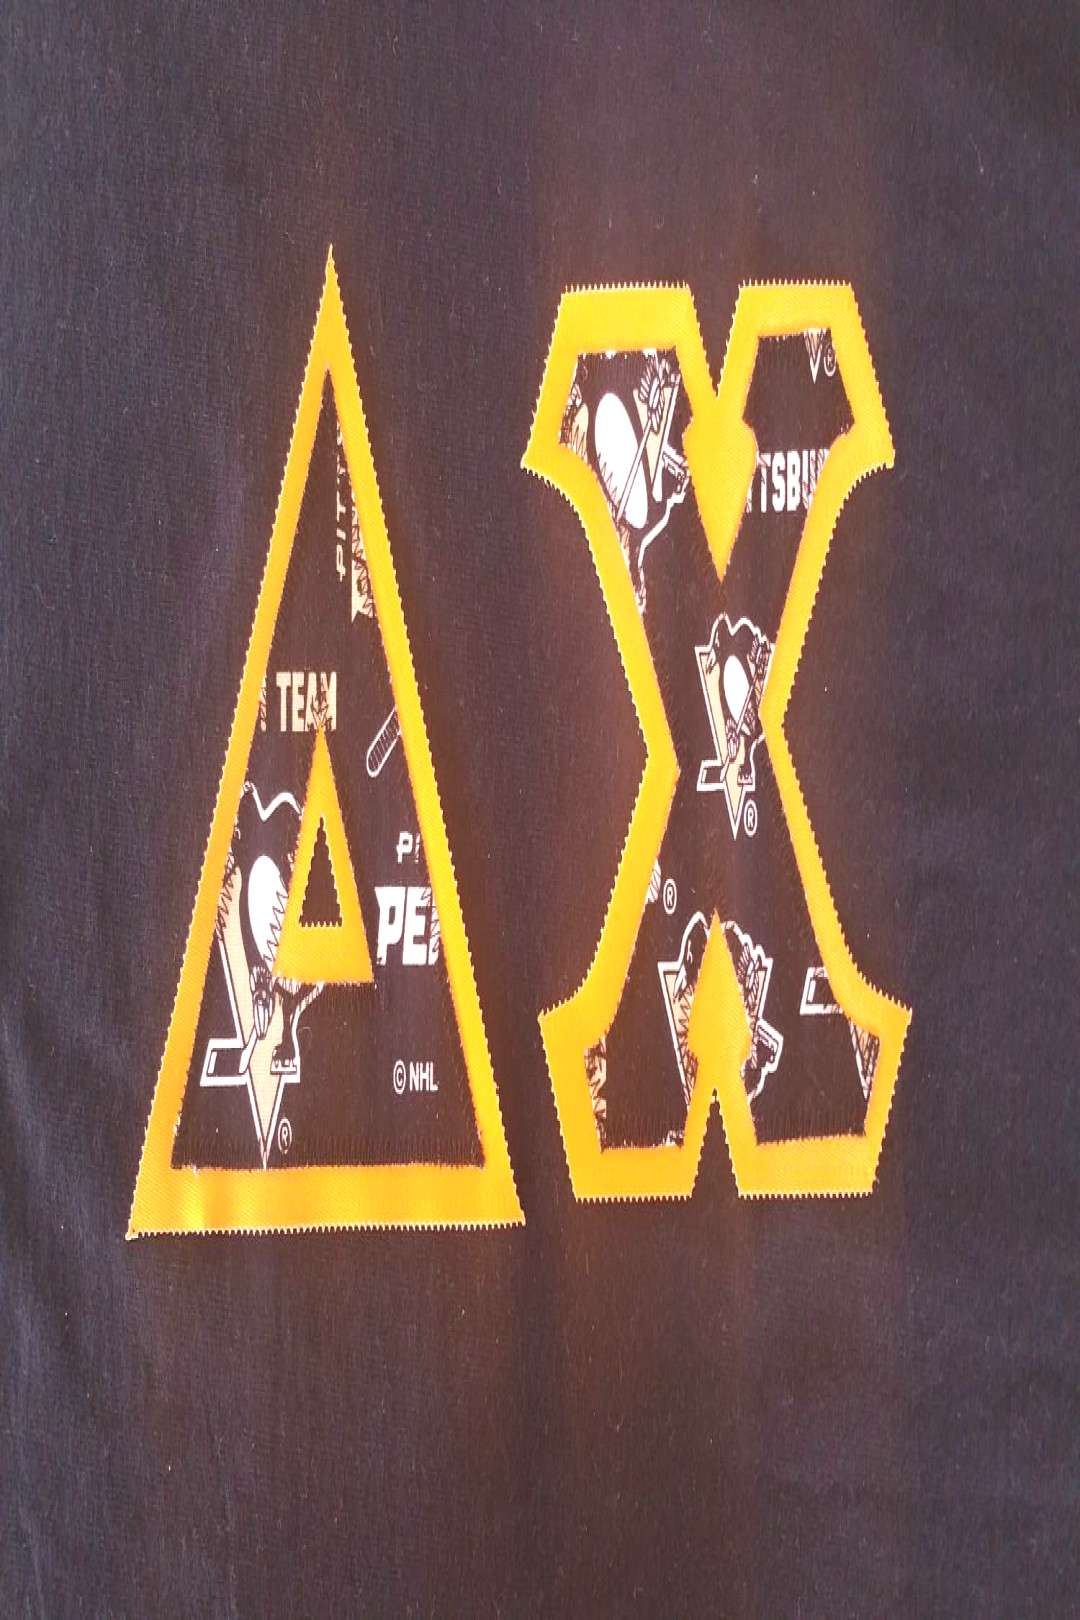 T-Shirt quotDelta Chiquot with Double Fabric Letters (Goldenrod/Pgh Penguins) $12.00 Be sure to check o